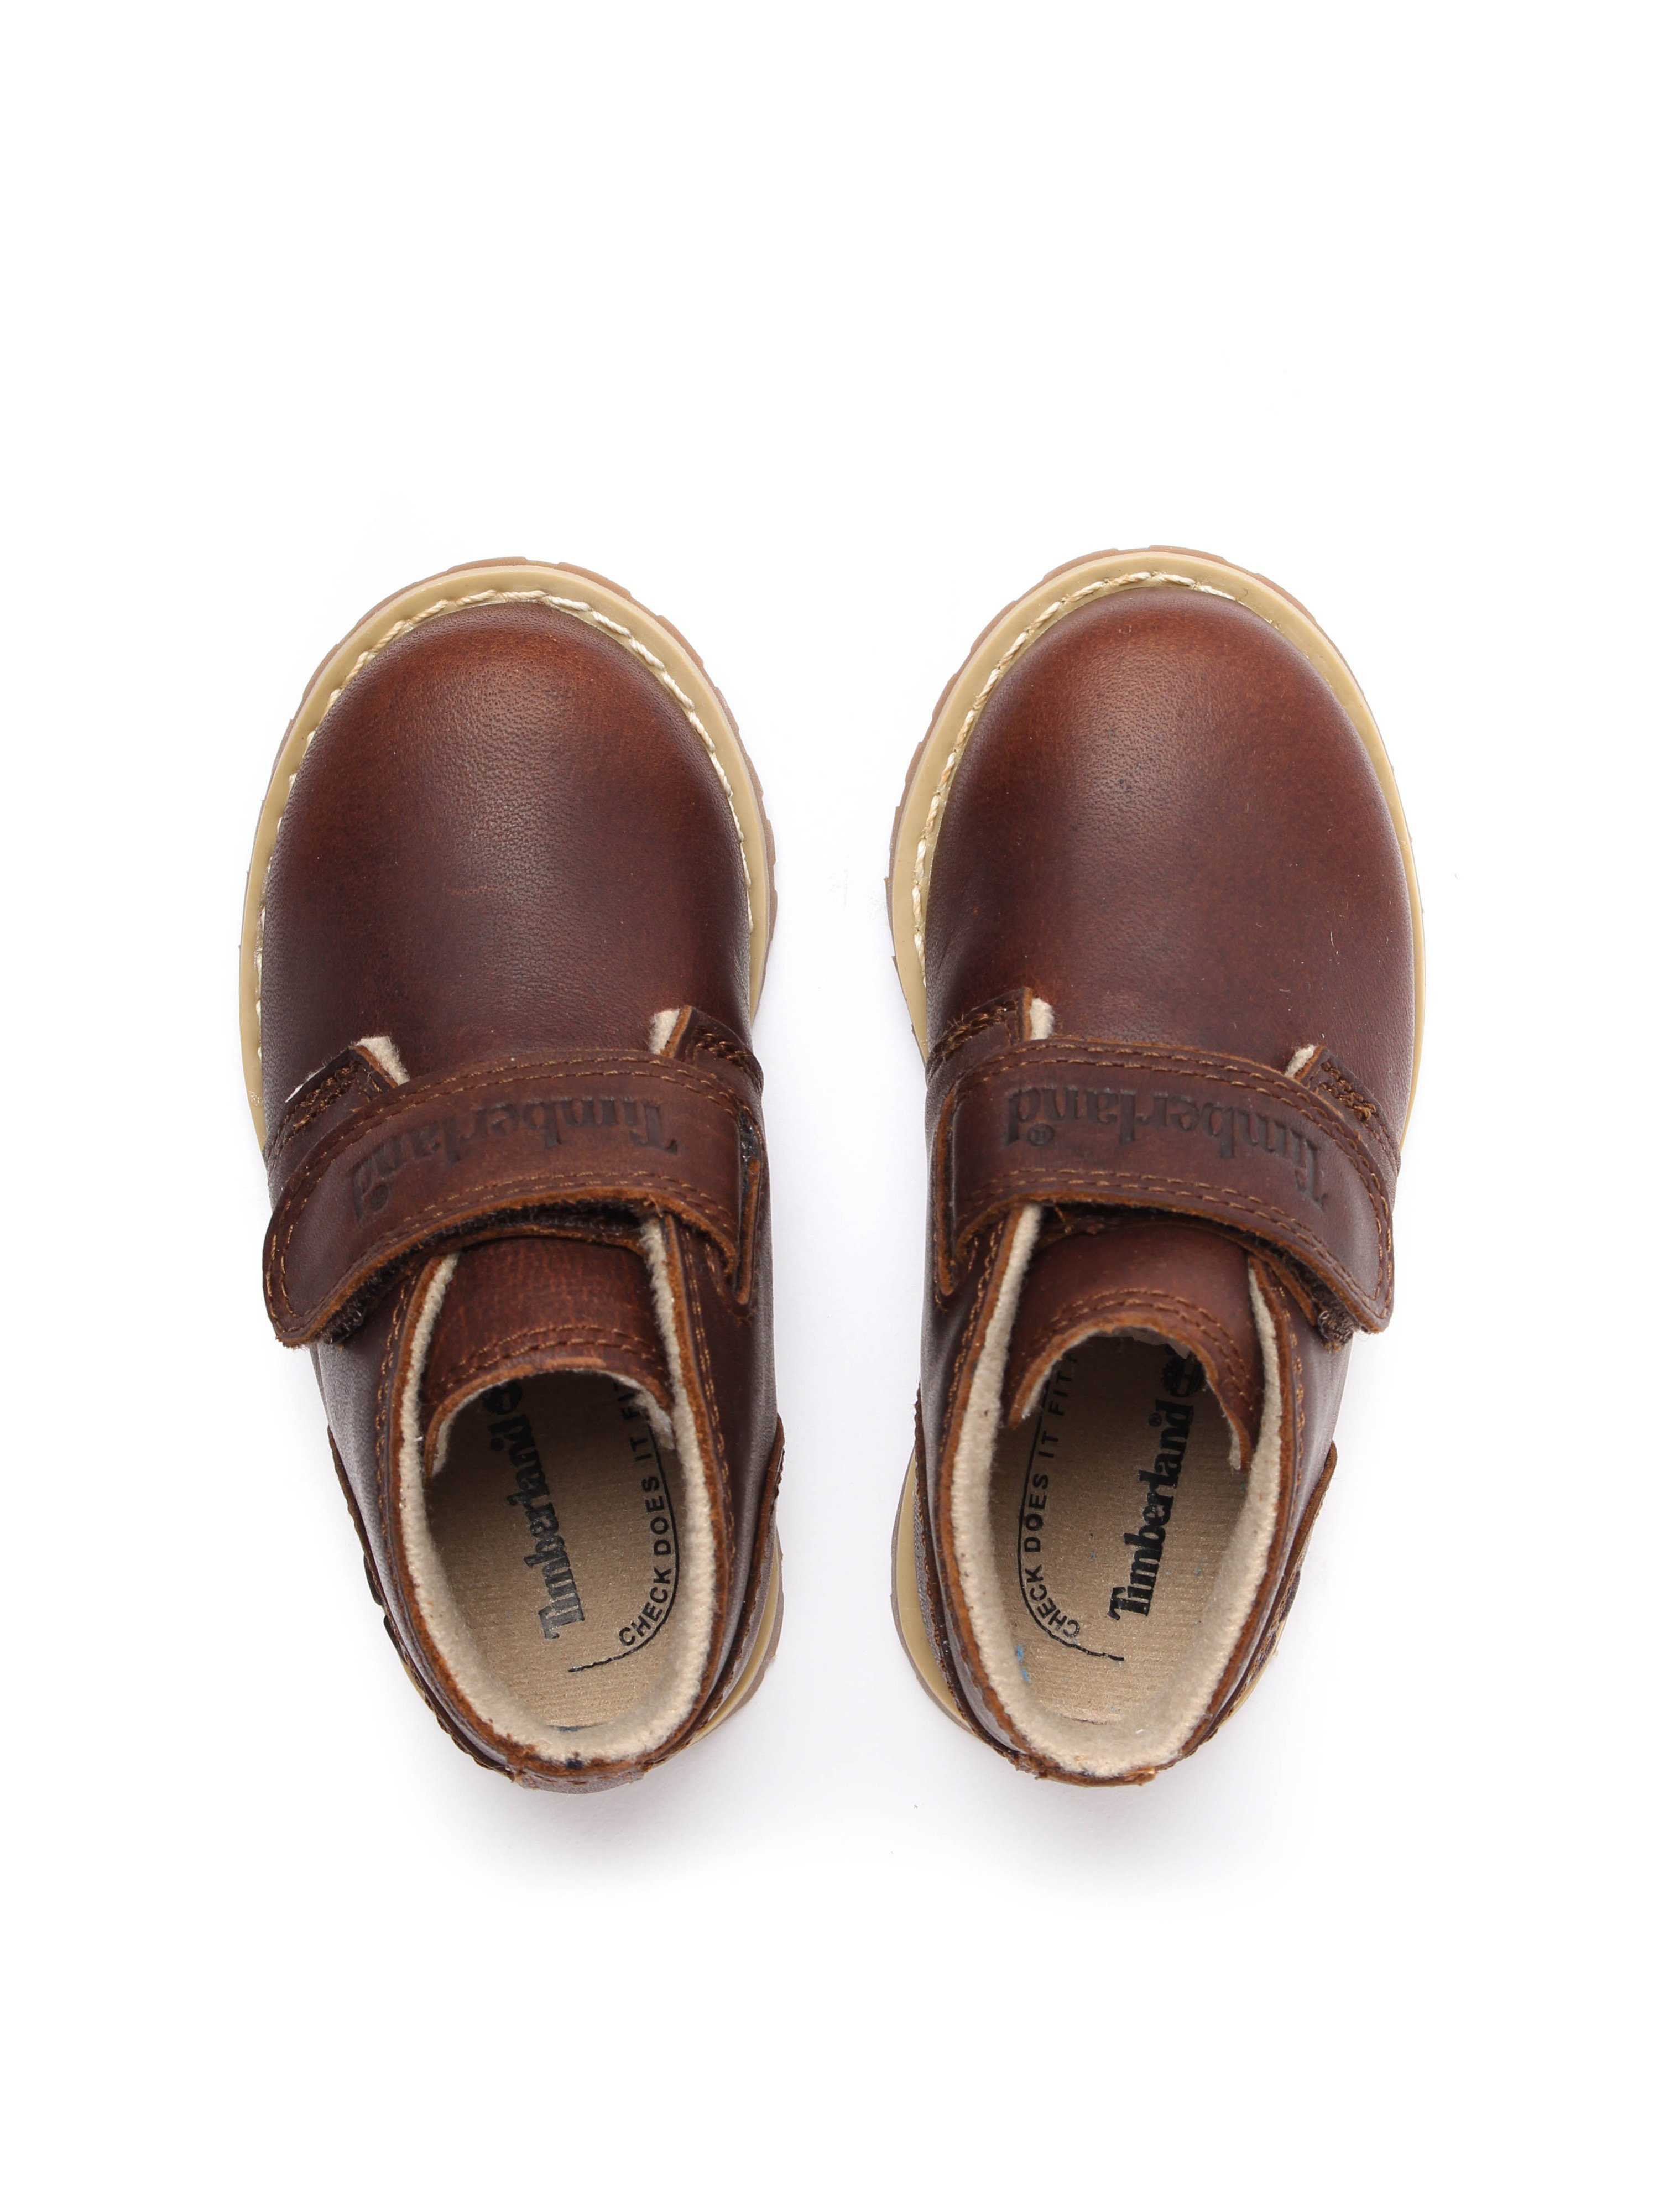 Timberland Infant Pokey Pine Hook and Loop Chukka - Dark Rubber Leather